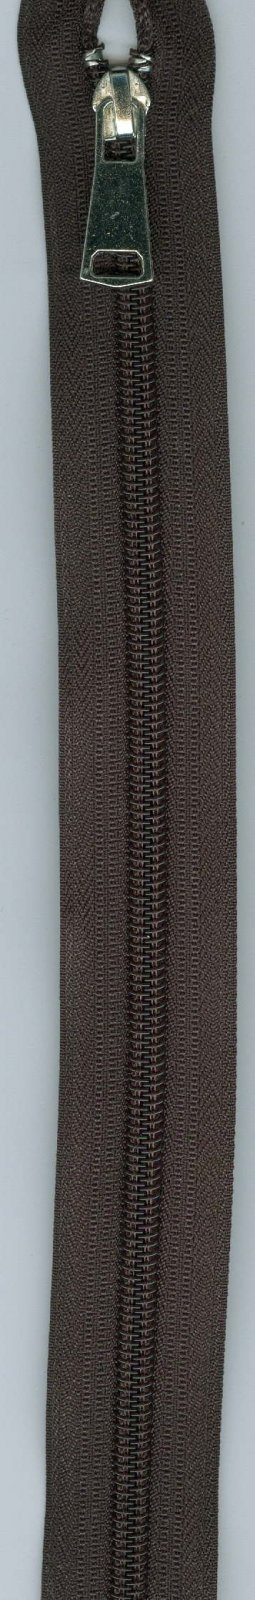 24 Separating Zipper #5 - Brown with Silver Pull